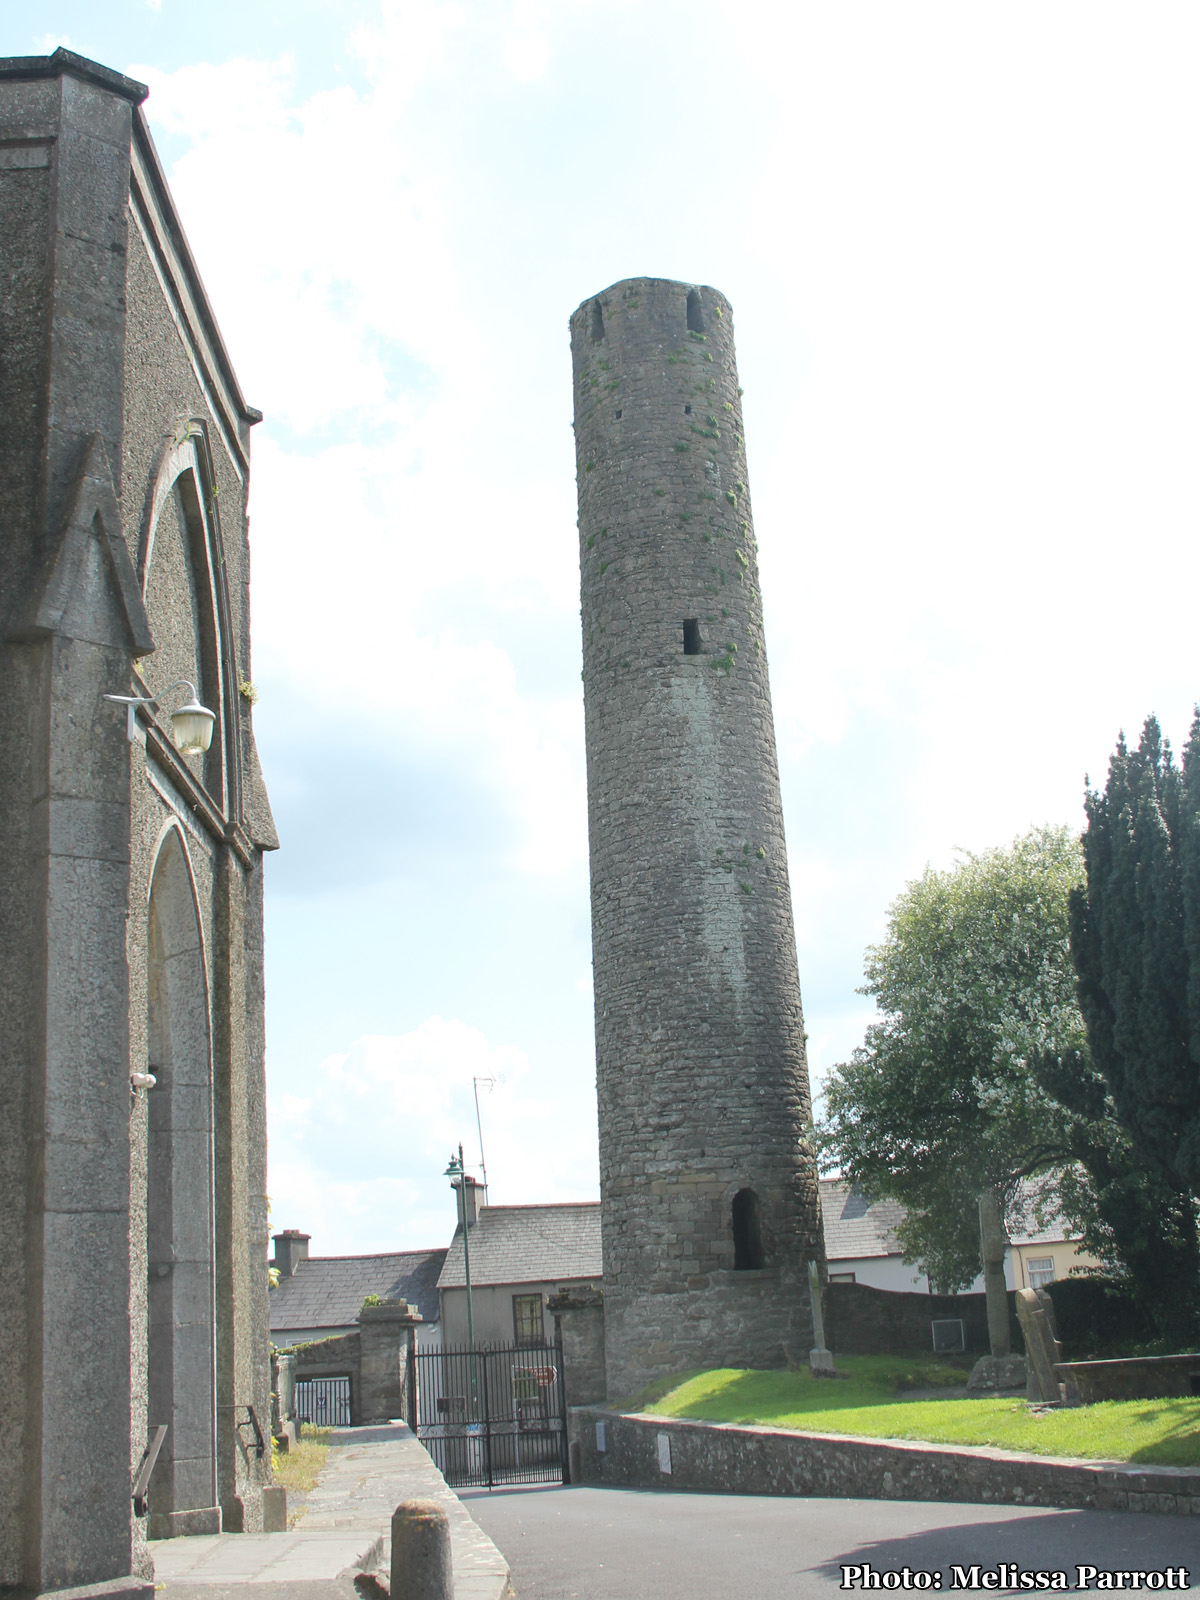 The Round Tower of Kells